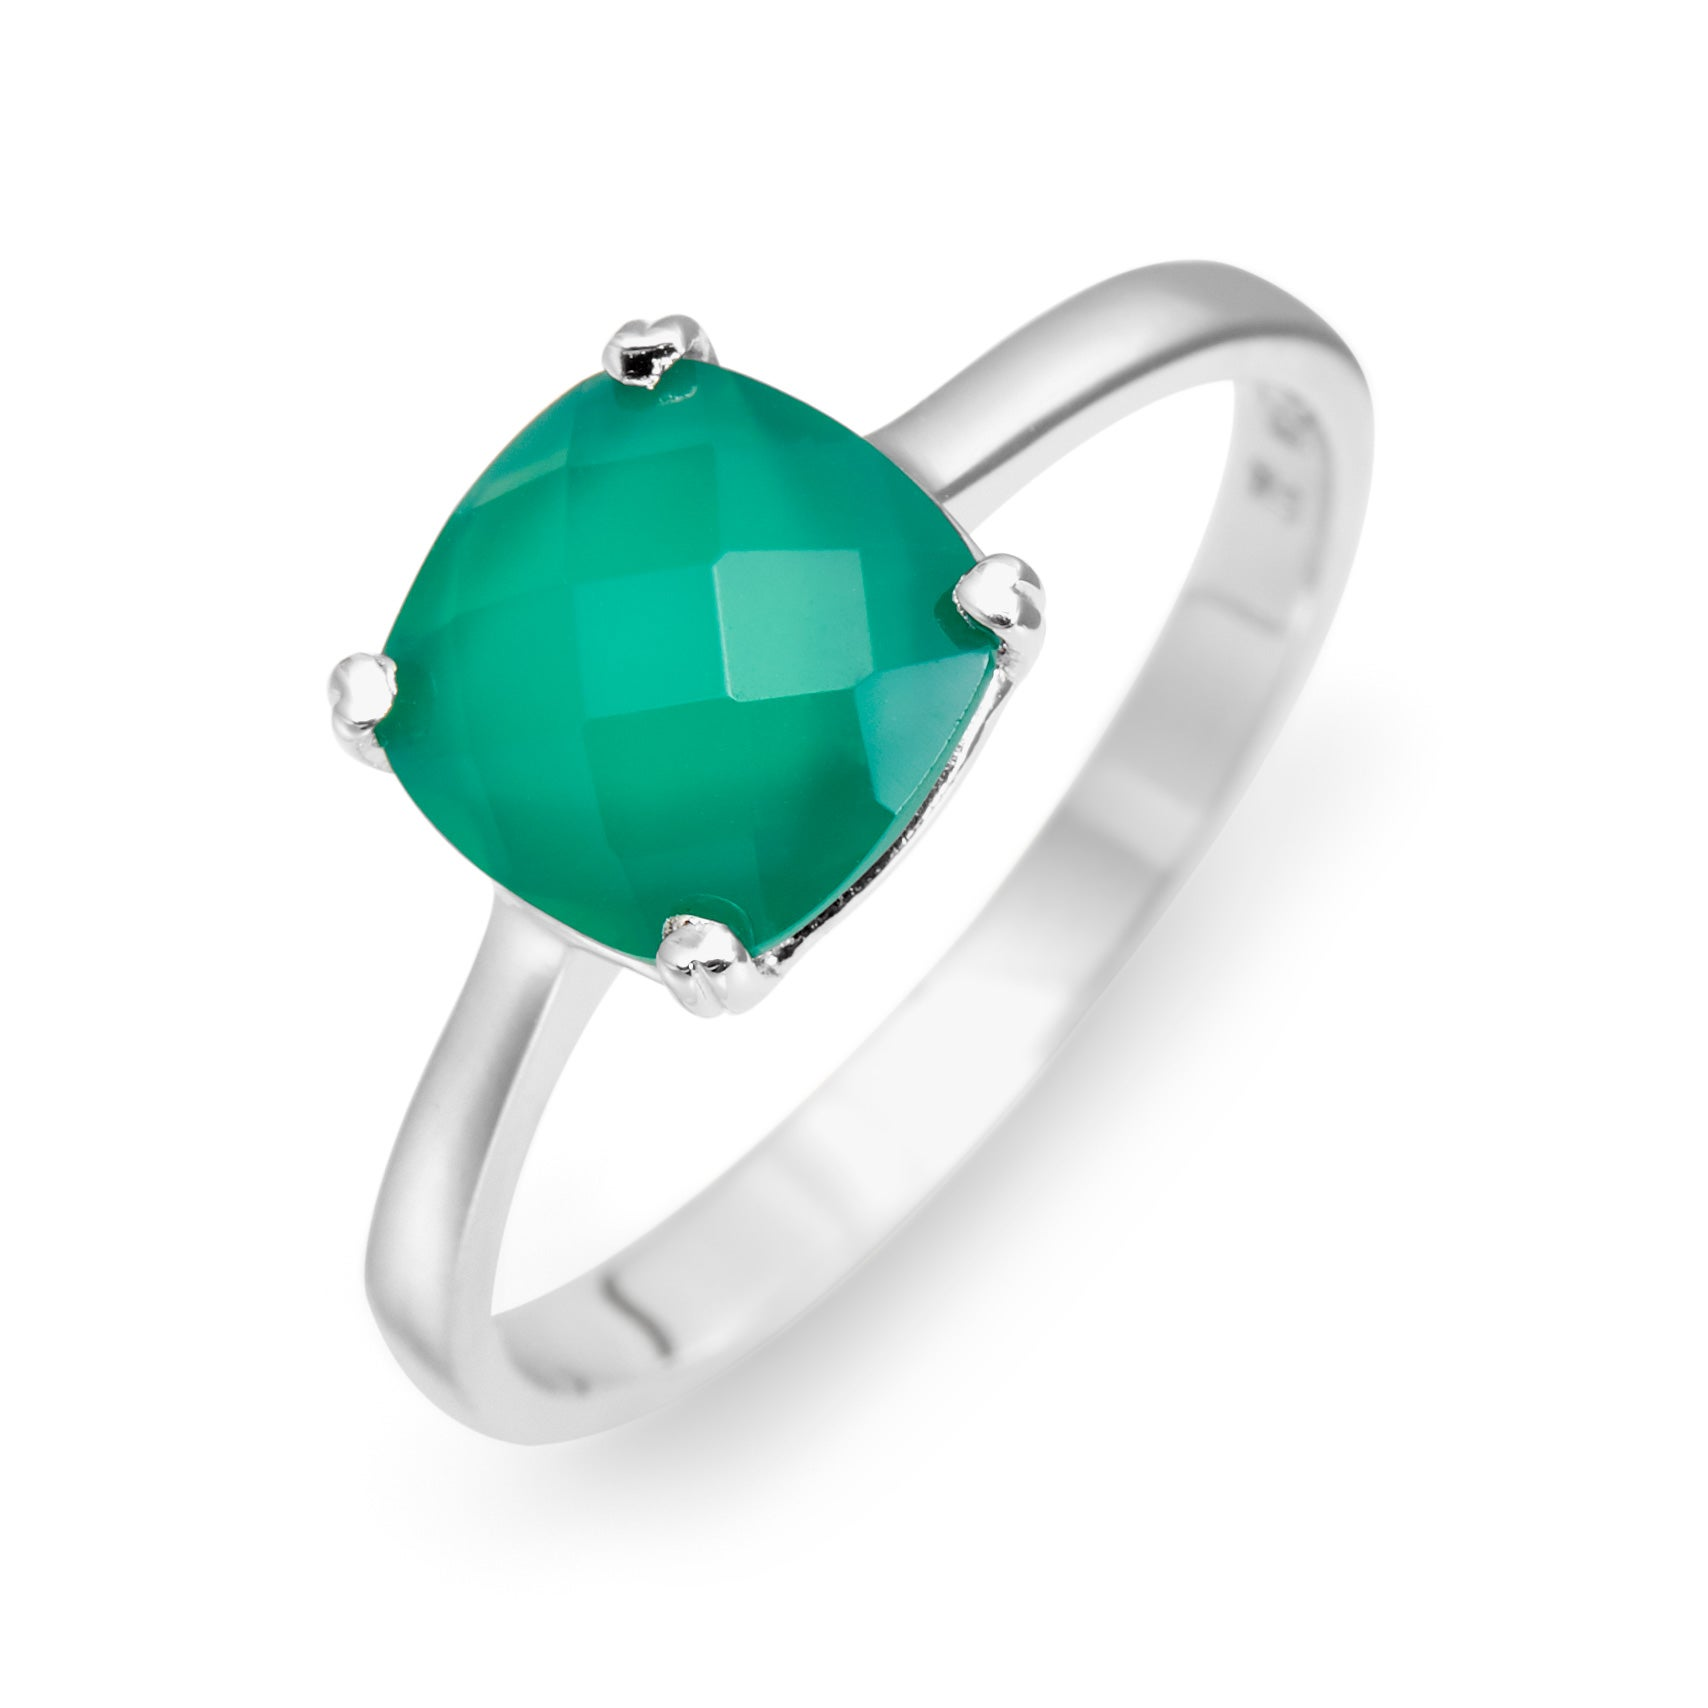 shop crop cushion faberge upscale emerald cut editor subsampling the faberg ring scale product false devotion jewellery